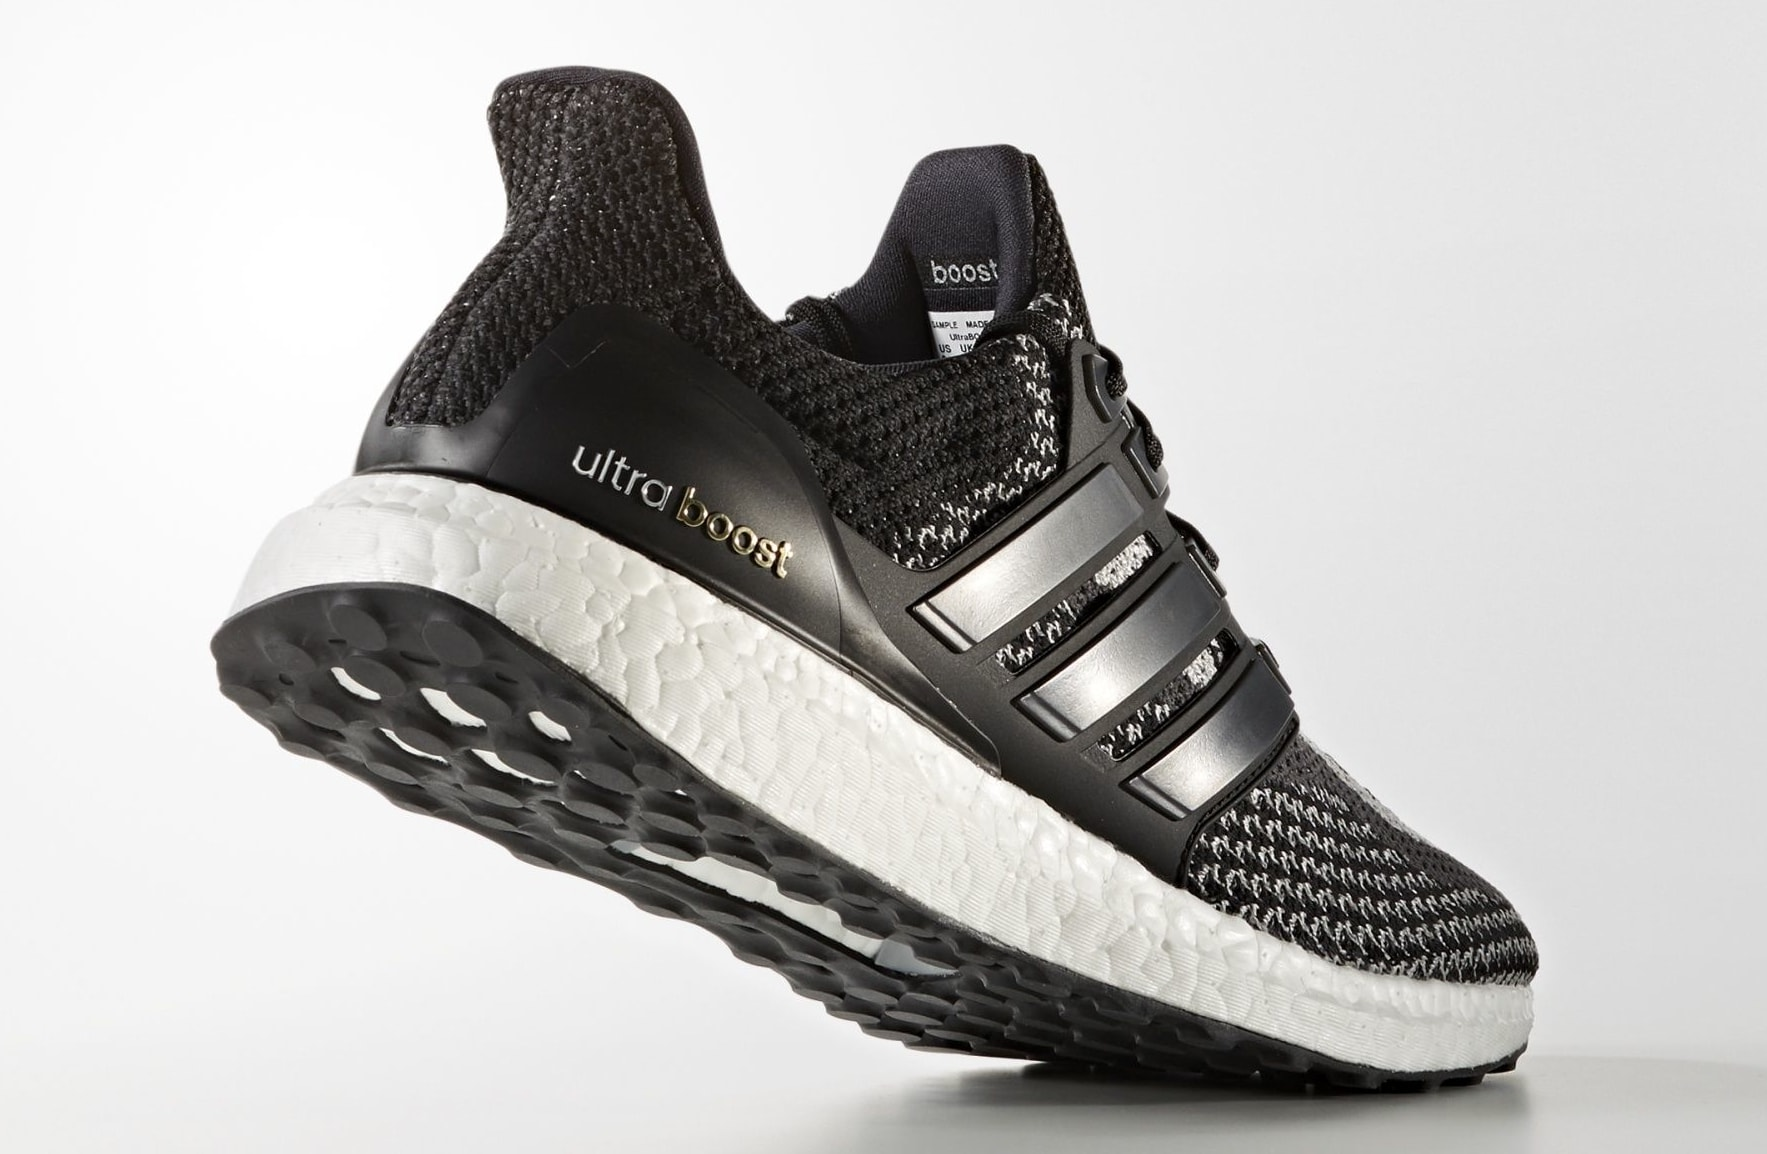 99336811a6773 ... low cost image via adidas adidas ultra boost 2.0 reflective release  date by1795 heel e5942 ae603